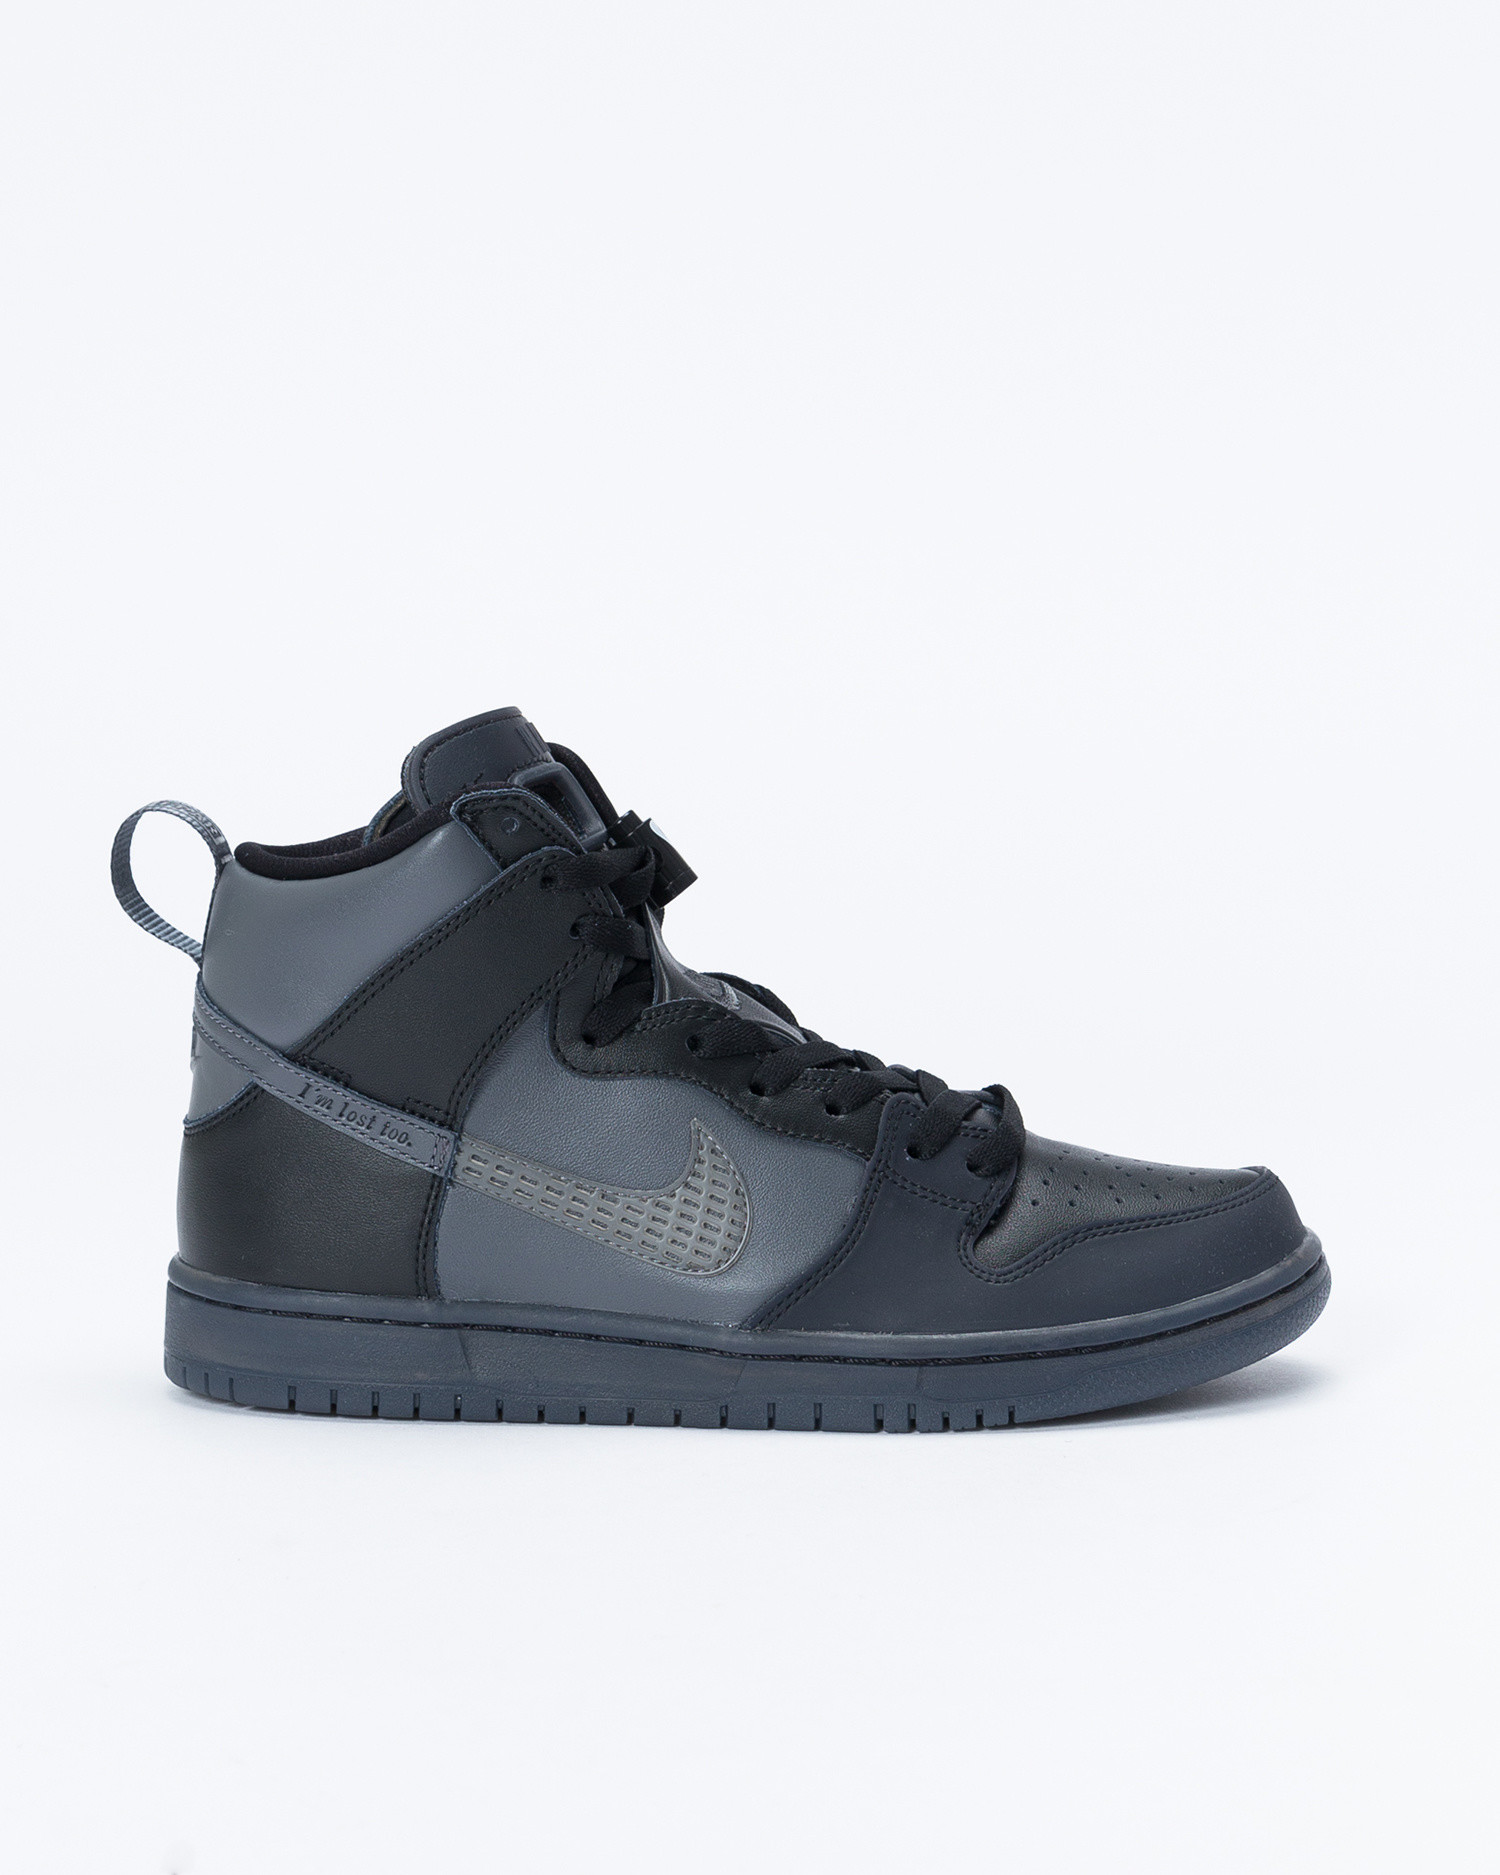 Nike sb dunk high pro FPAR prm qs Black/dark grey-black